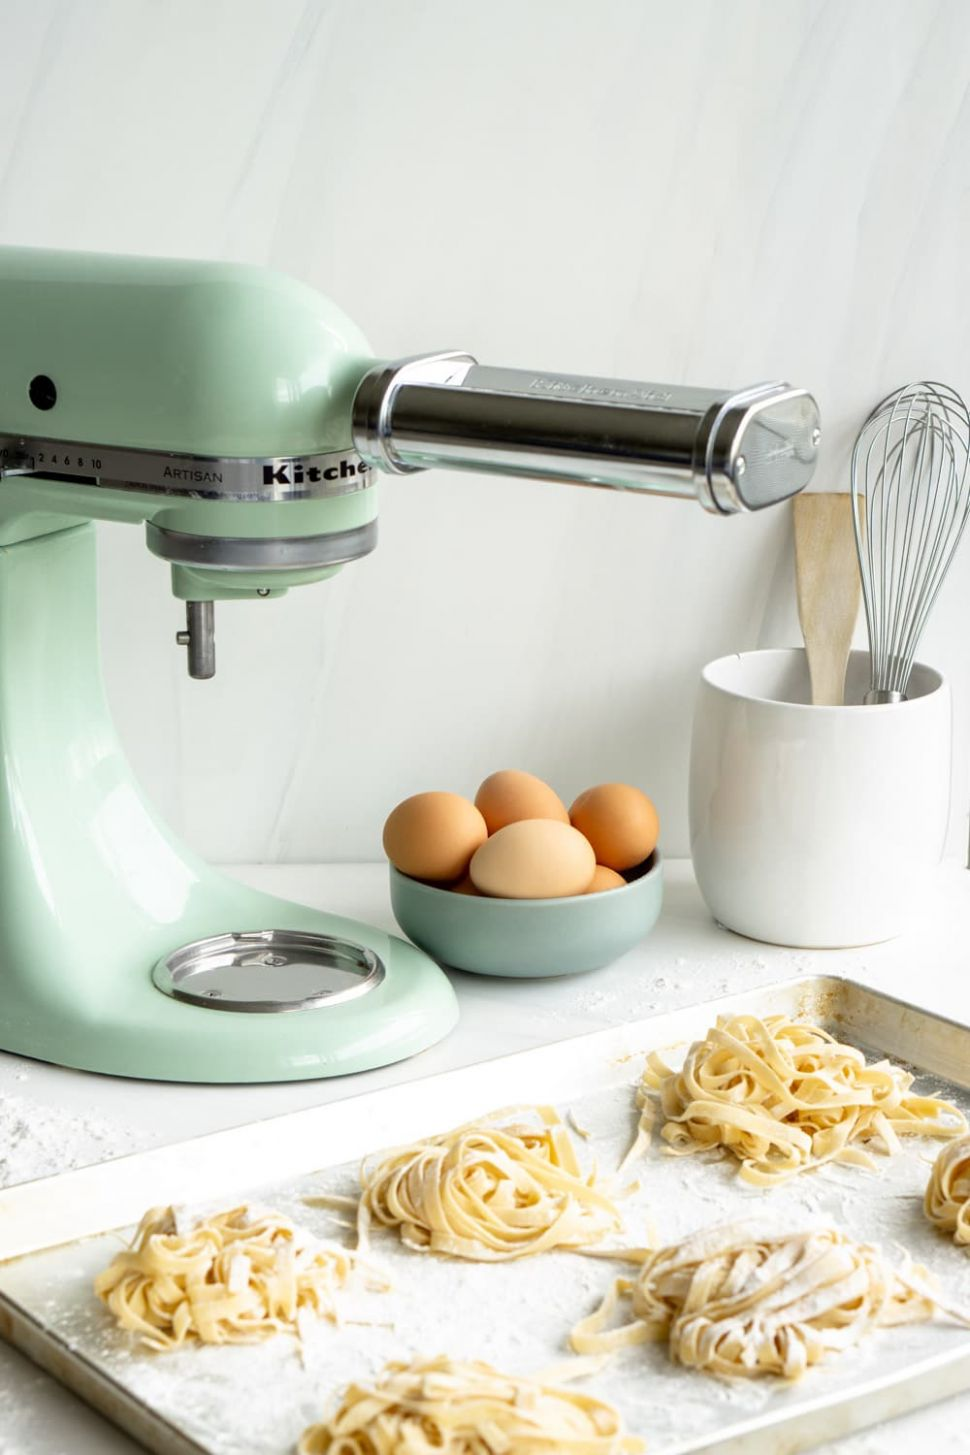 KitchenAid Pasta Recipe - Pasta Recipes Kitchenaid